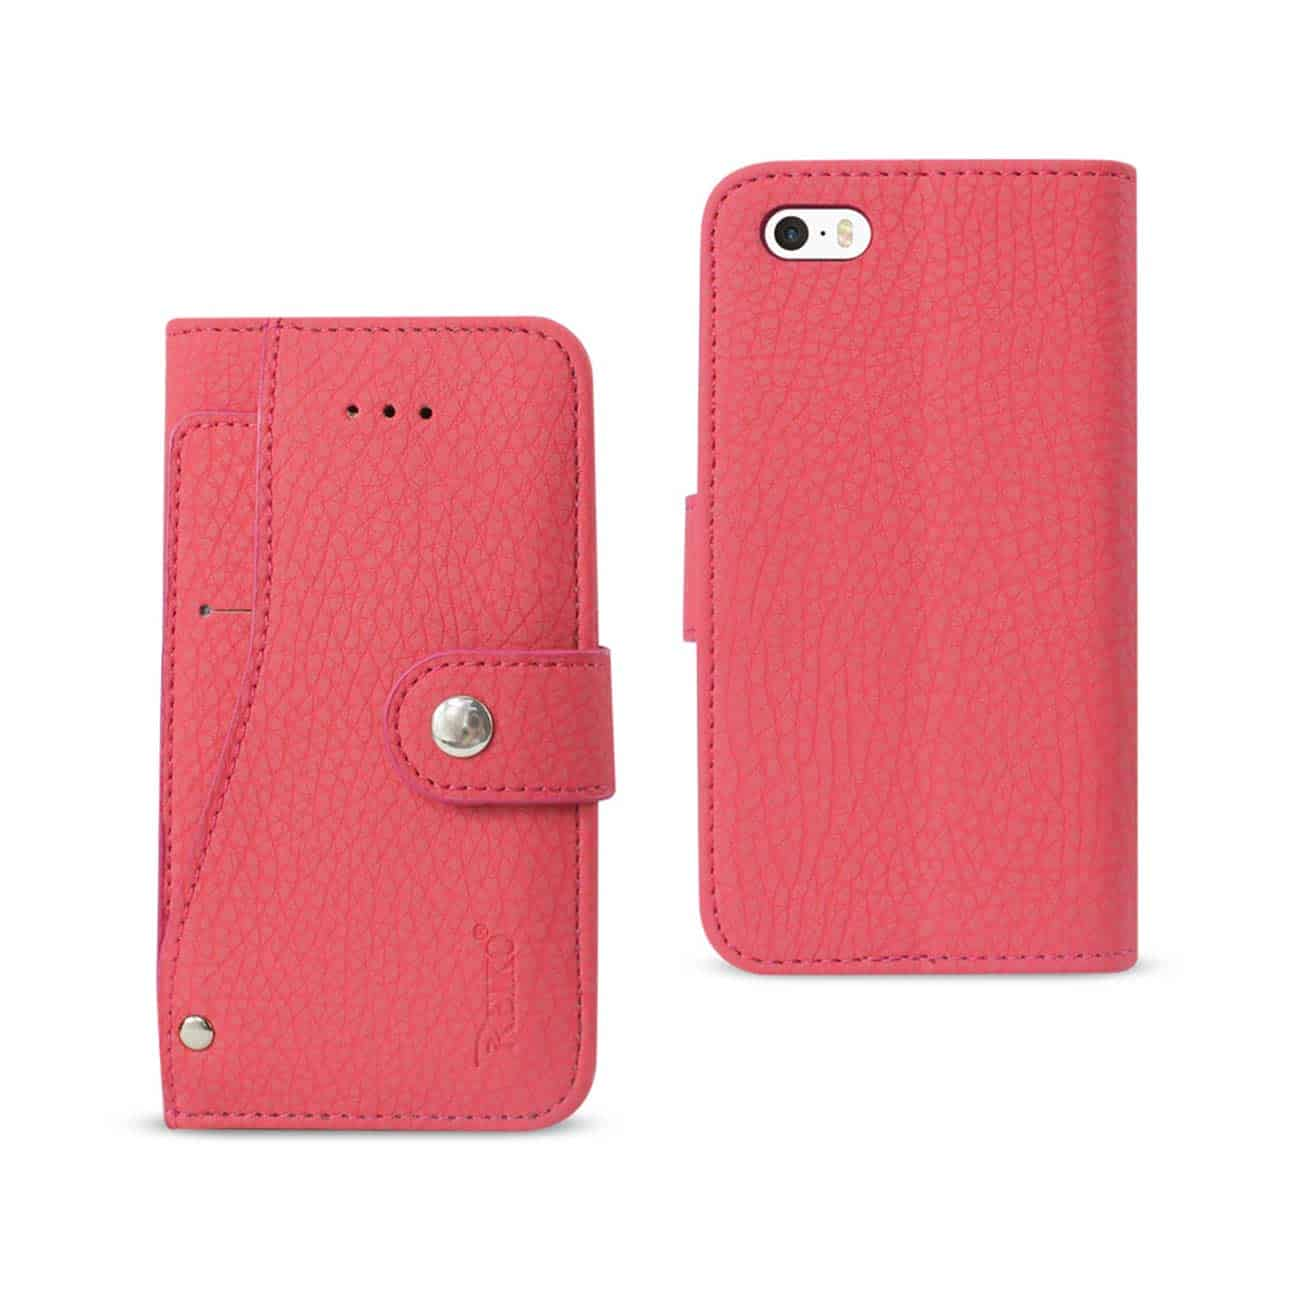 IPHONE SE WALLET CASE WITH SLIDE OUT POCKET AND FOLD STAND IN HOT PINK